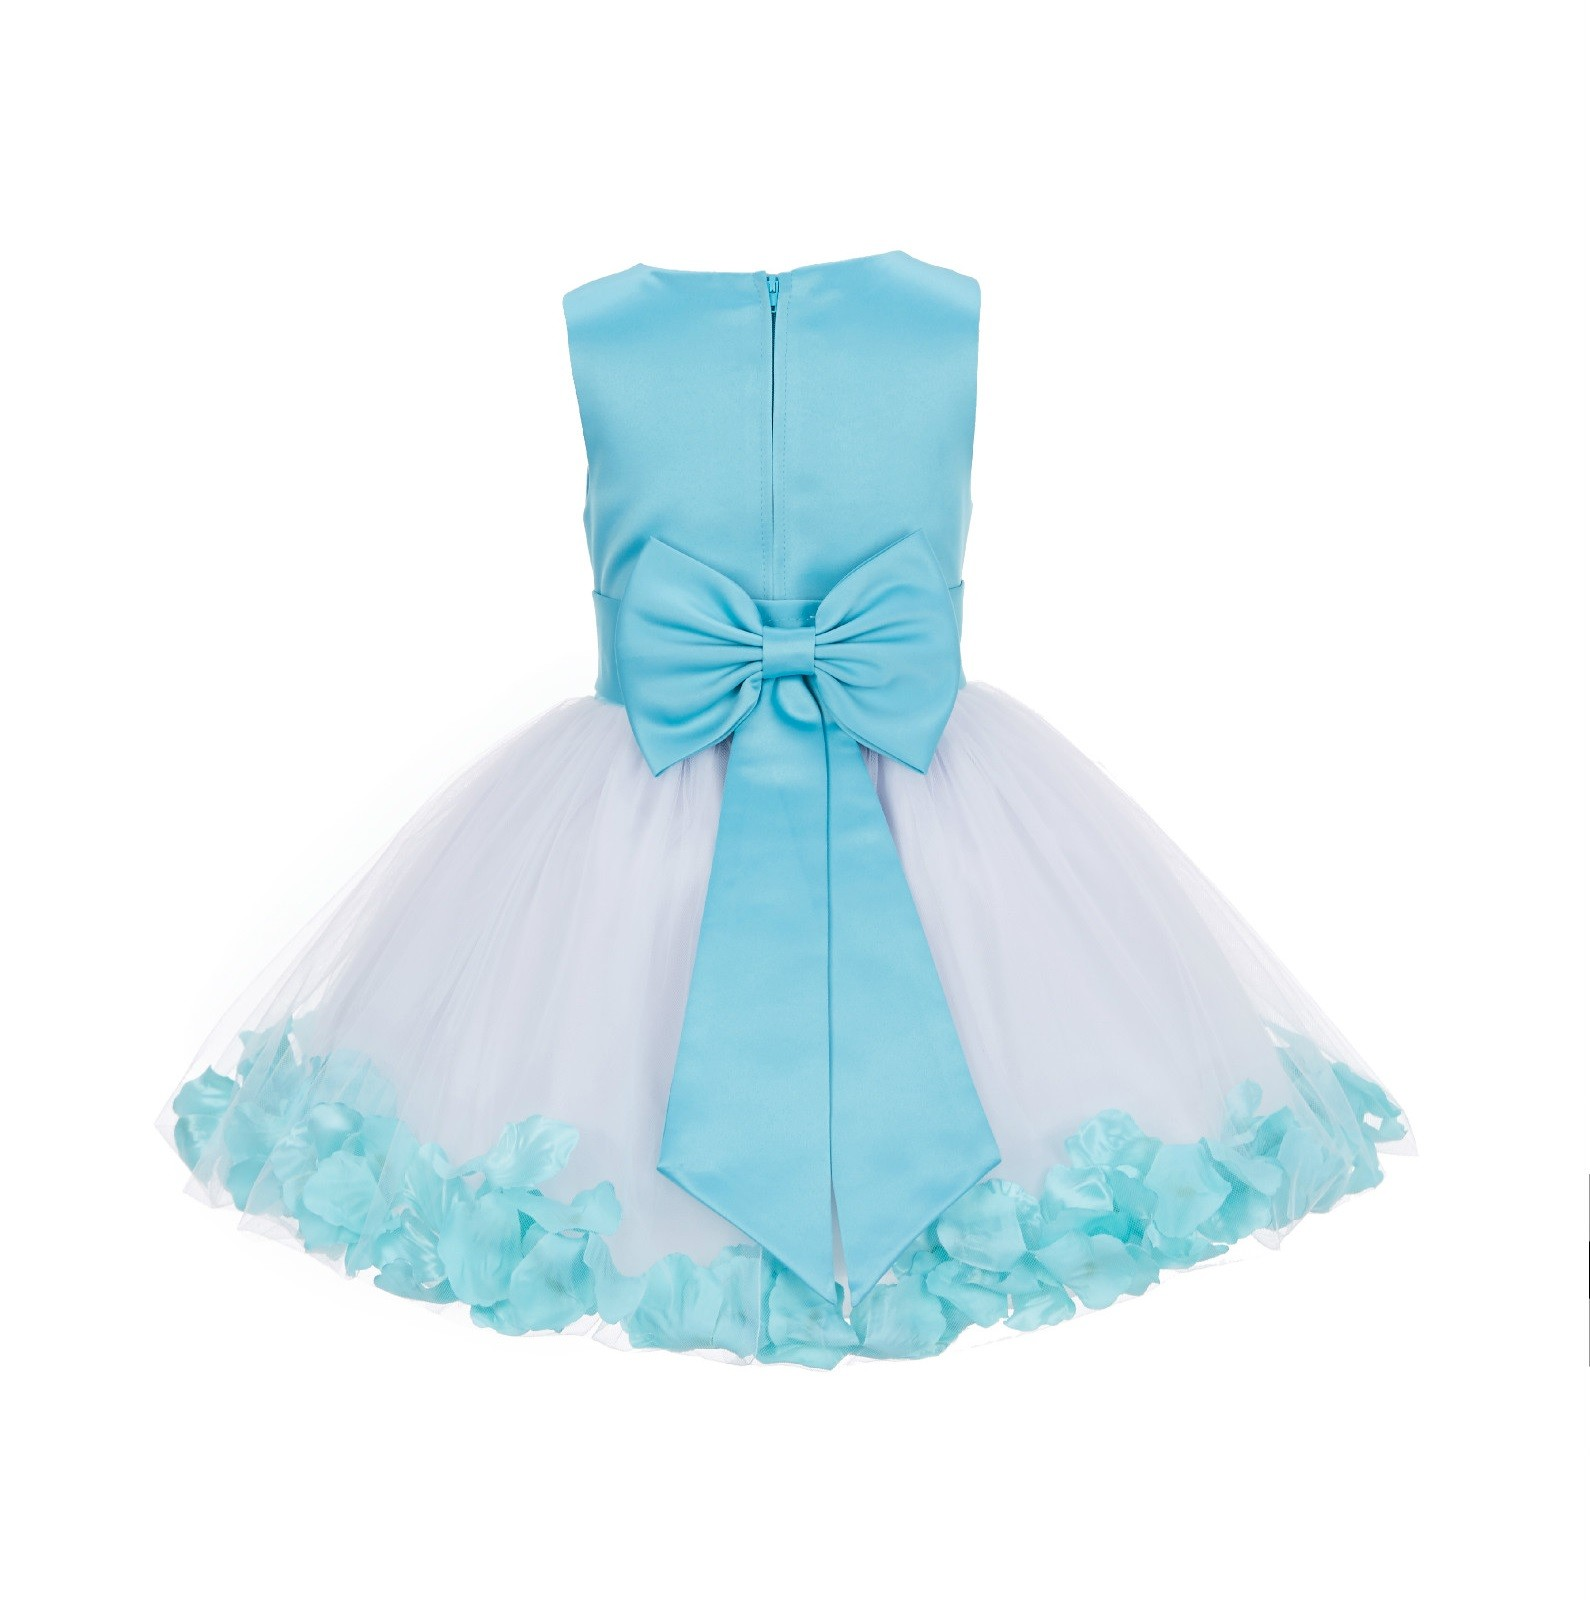 Tiffany Rose Petals Tulle Flower Girl Dress Special Gown 305nt